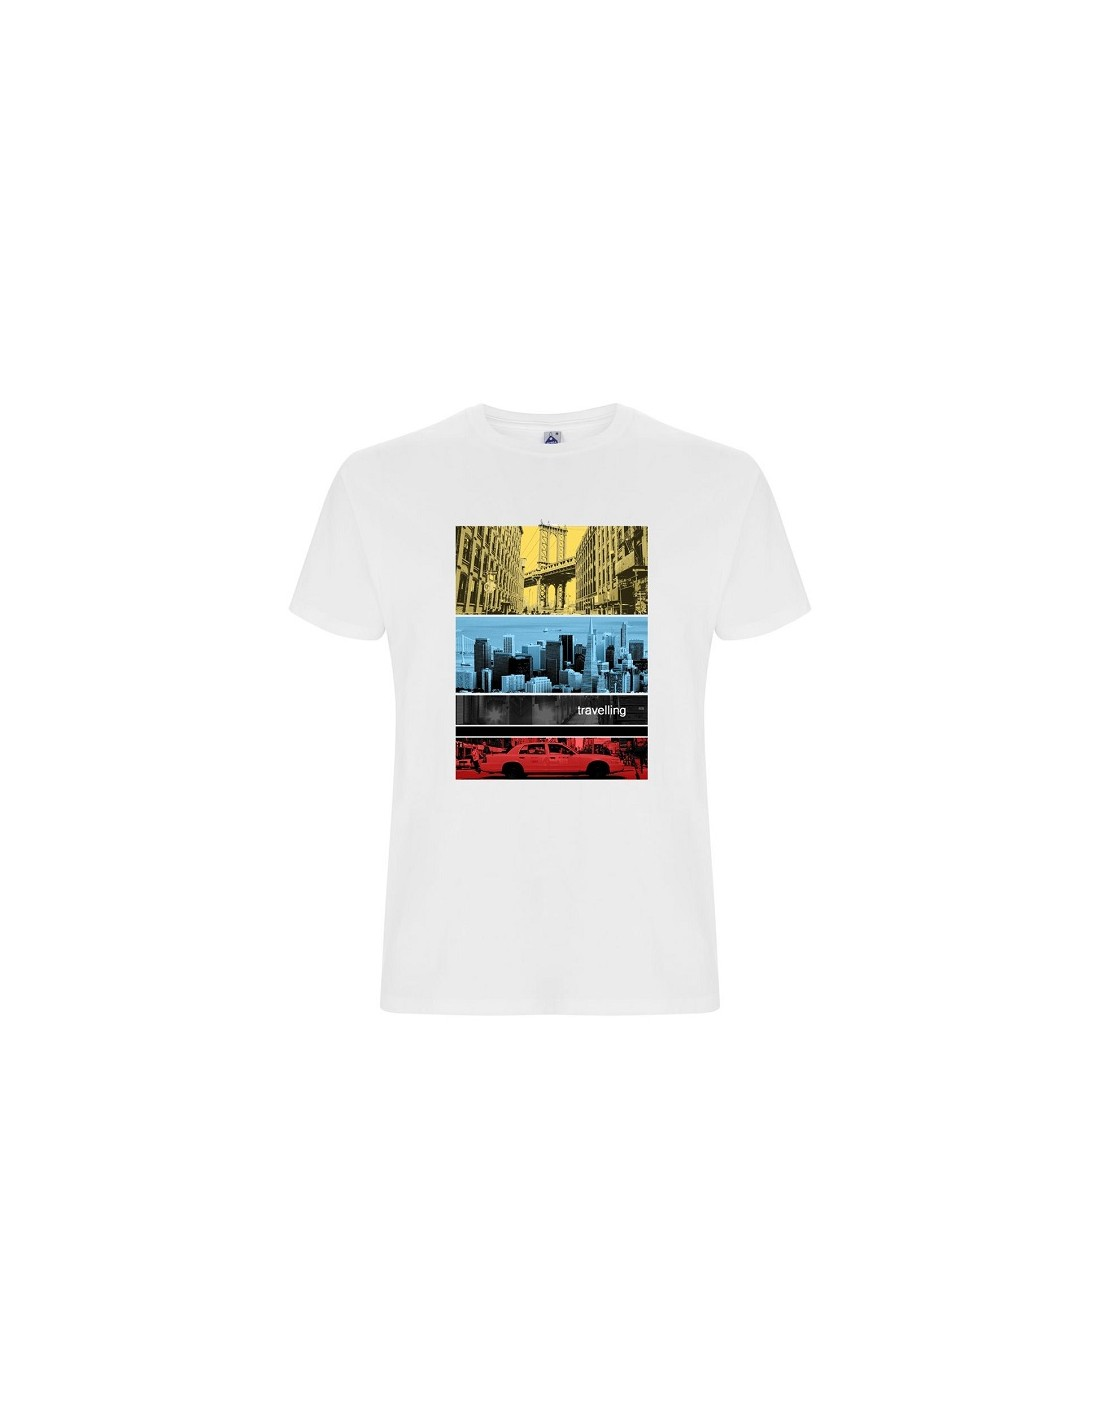 TSHIRT CITY / COLOR - TRAVELLING